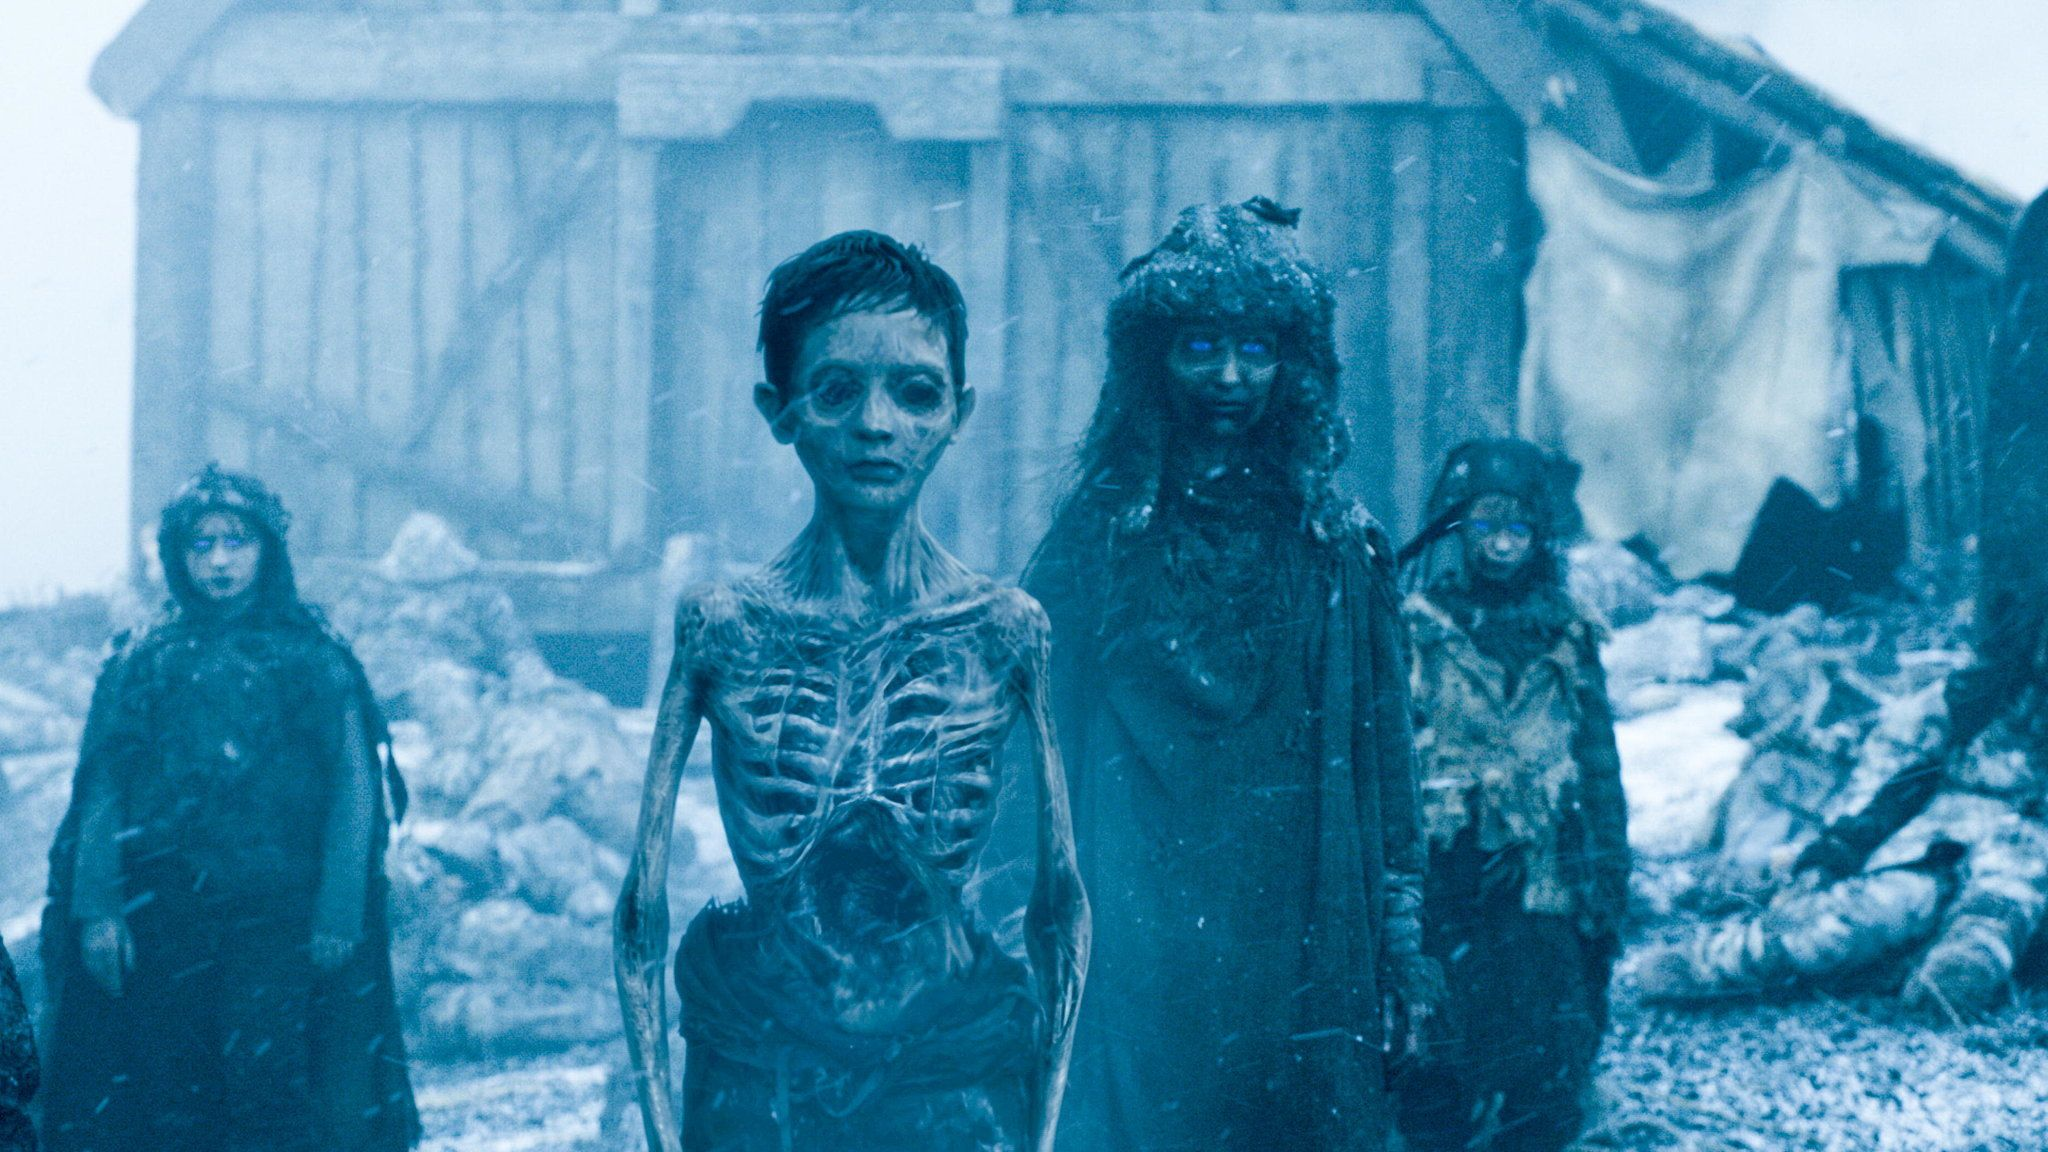 game-of-thrones-wights-white-walkers-night-king-zombies